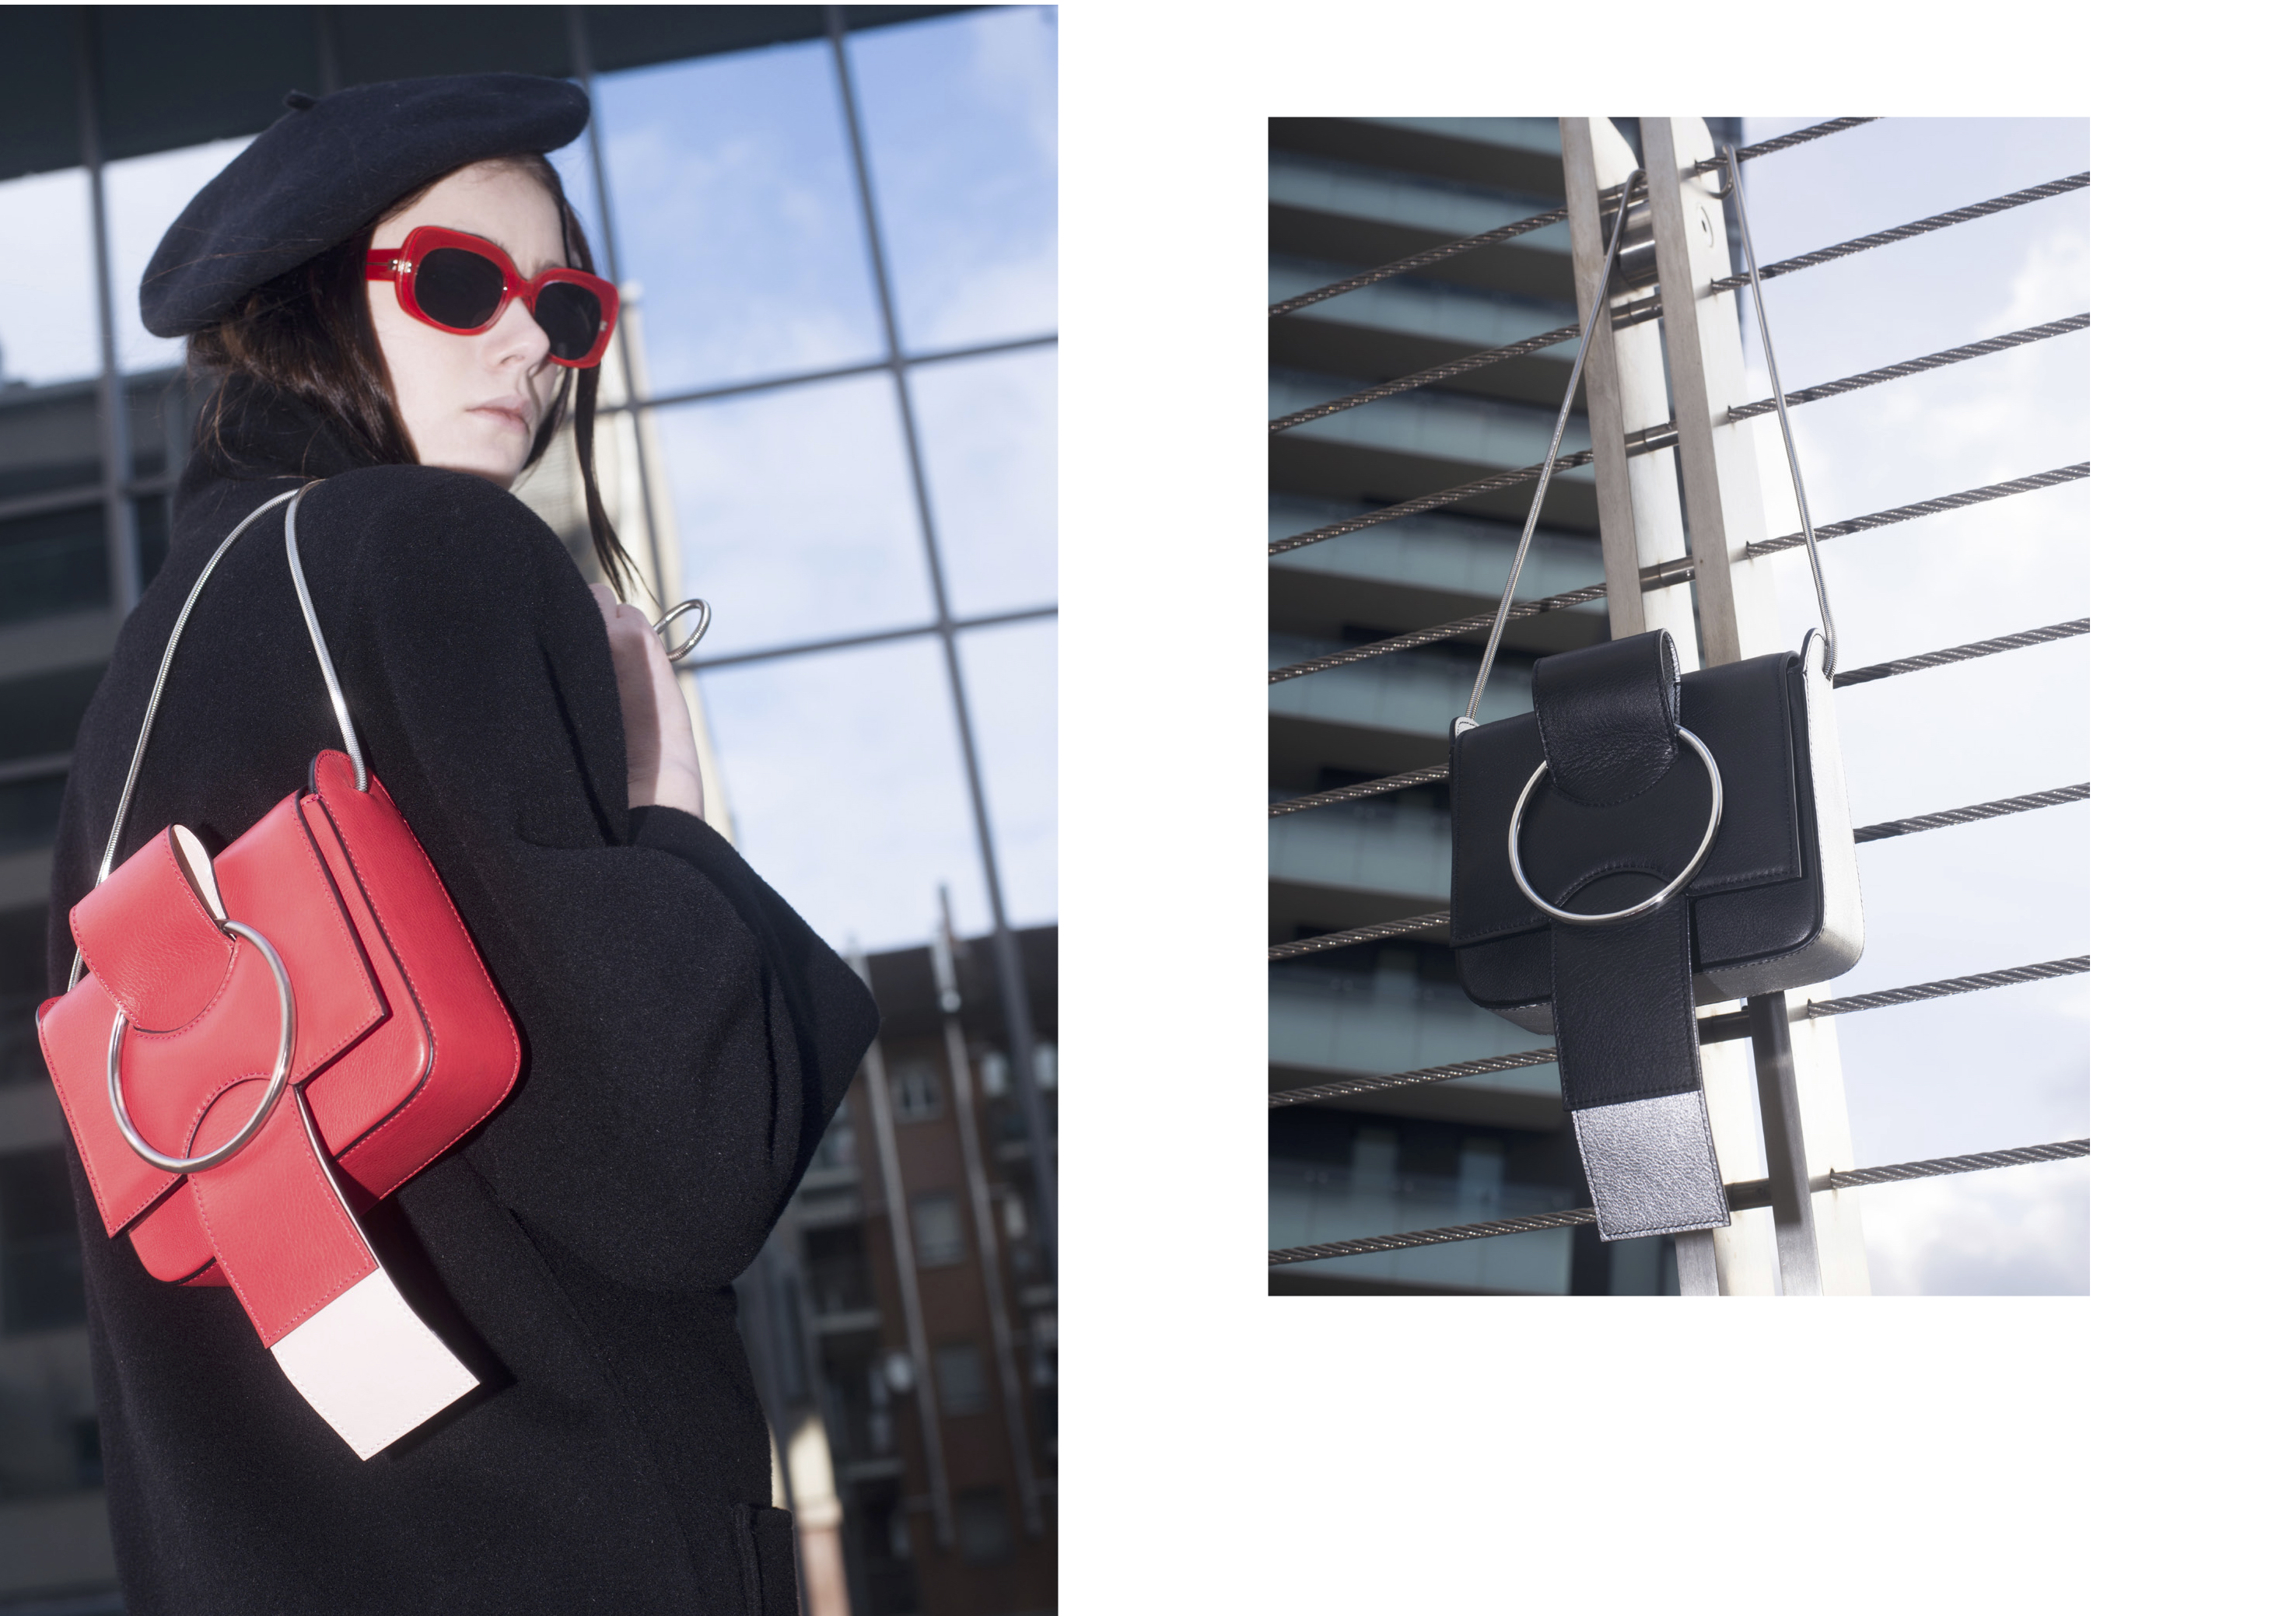 fw collection, ottonemilano handbag, ottonebag, ottonehandbag, ottonemilano bag, minimal handbag, sleek, cipria bag, pink bag, shoulder bag,cross body,red bag, black, silver bag, chain strap